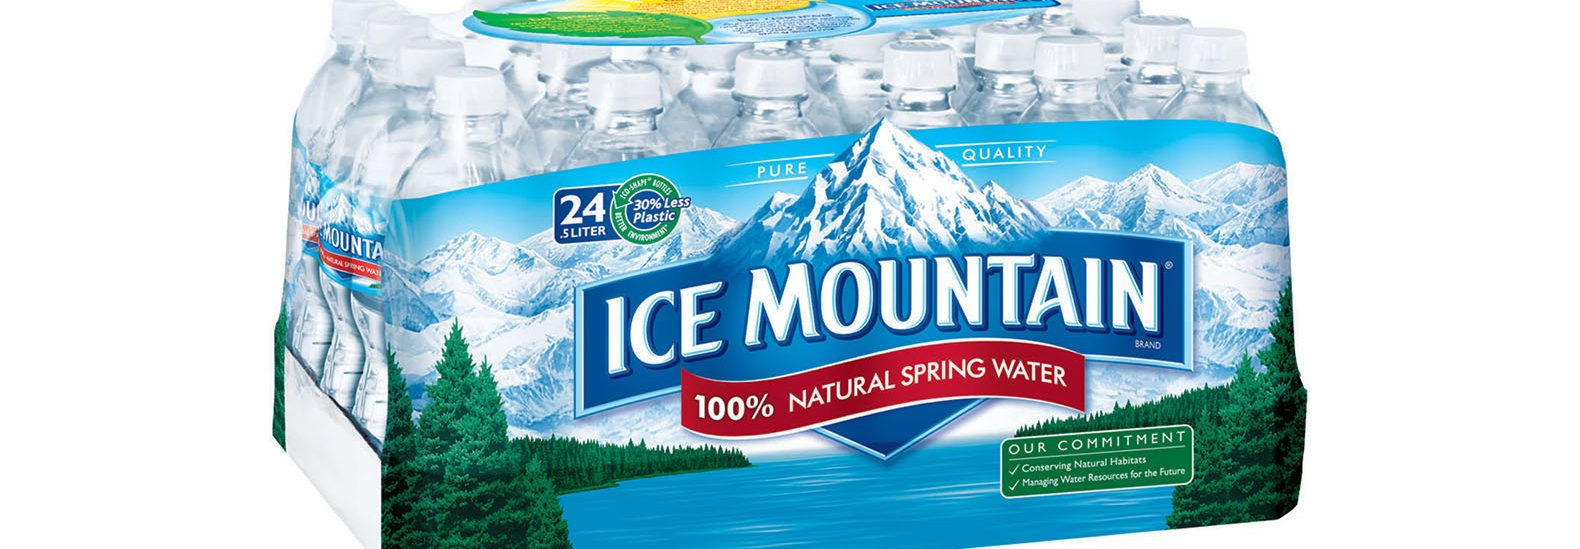 Nestlé plans to pump 210 million gallons of Michigan water